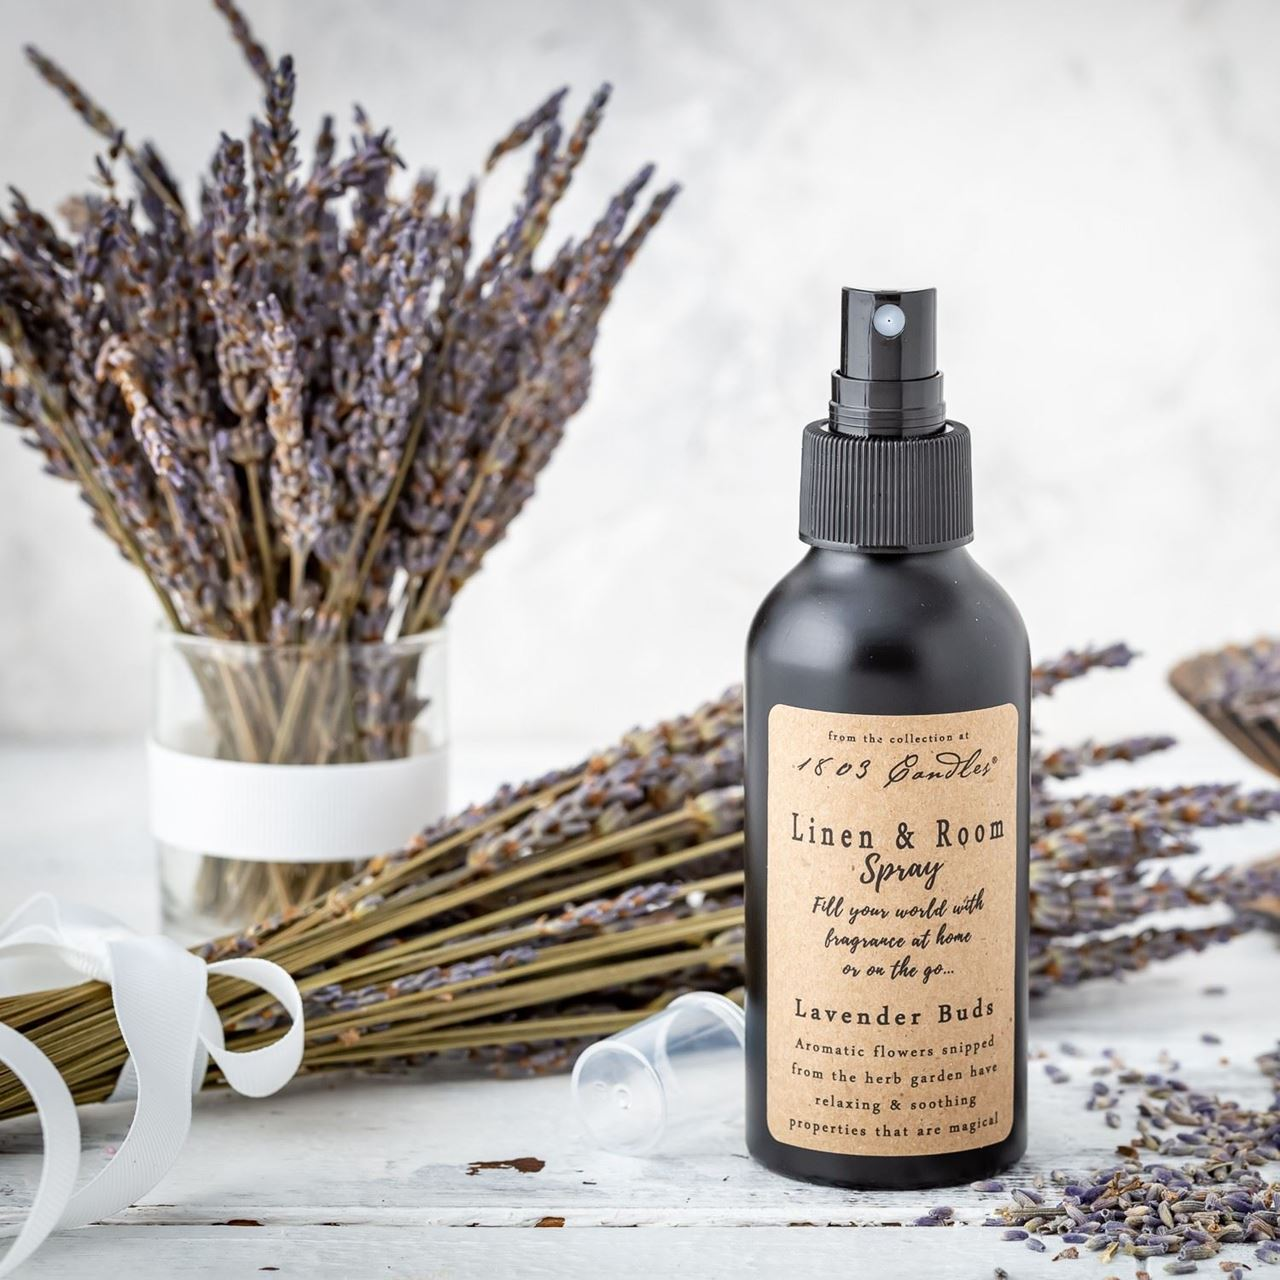 Lavender Buds Linen & Room Spray by 1803 Candles